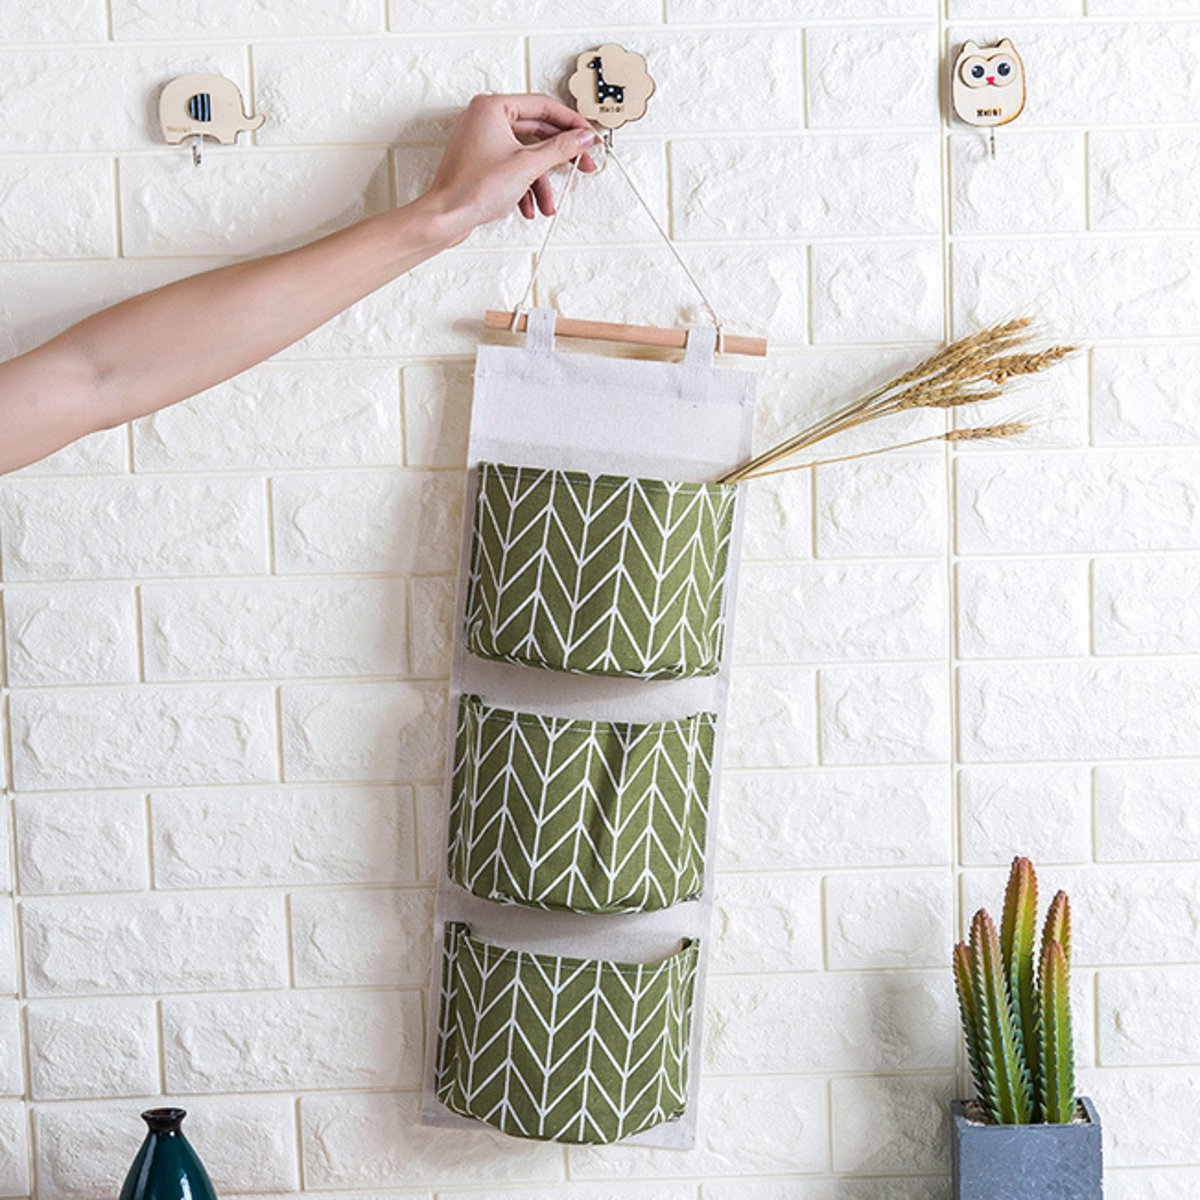 3 Pockets Hanging Storage Bag Wall Mounted Cotton Linen Wardrobe Wall Pouch Toys Holder Door Storage Pockets Bedroom Bathroom Organizer Green